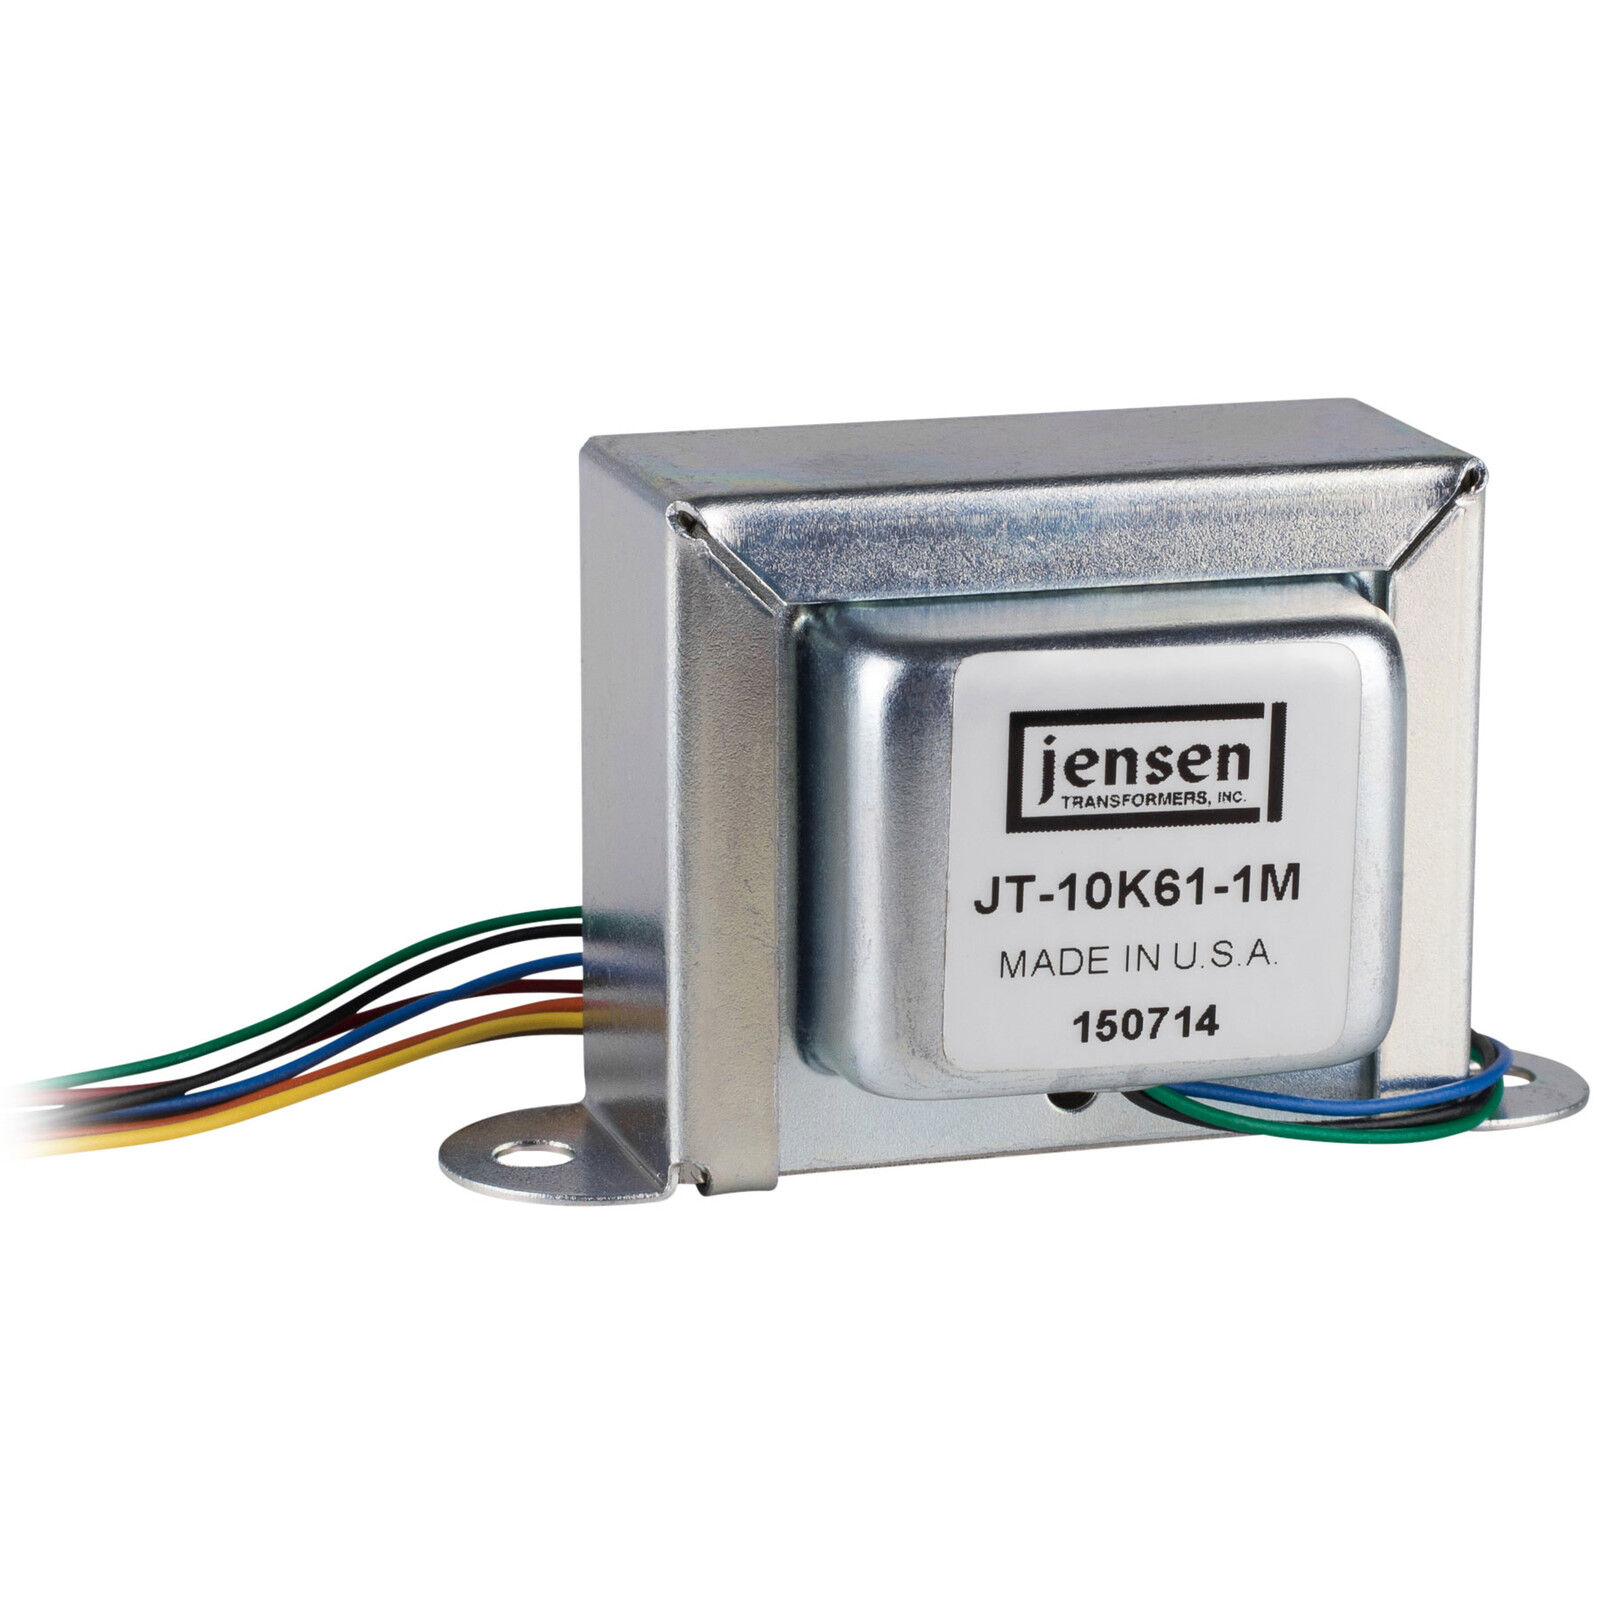 Jensen JT-10K61-1M Premium Line Transformer for Vacuum Tube ...